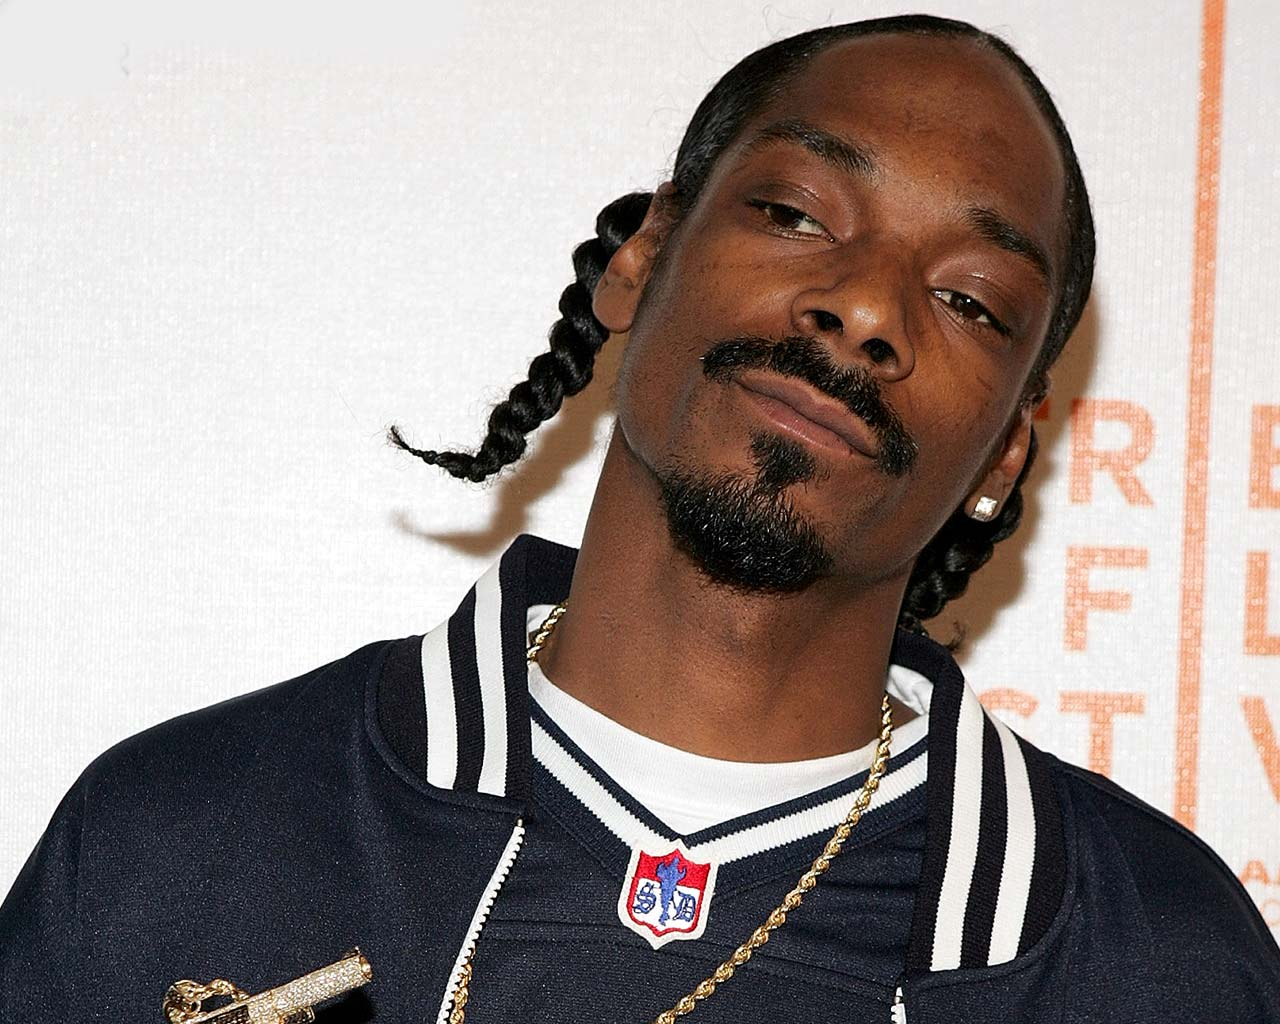 Snoop Dogg Talks Female Rappers, Pharrell, And More With D.L. Hughley - Rap Basement